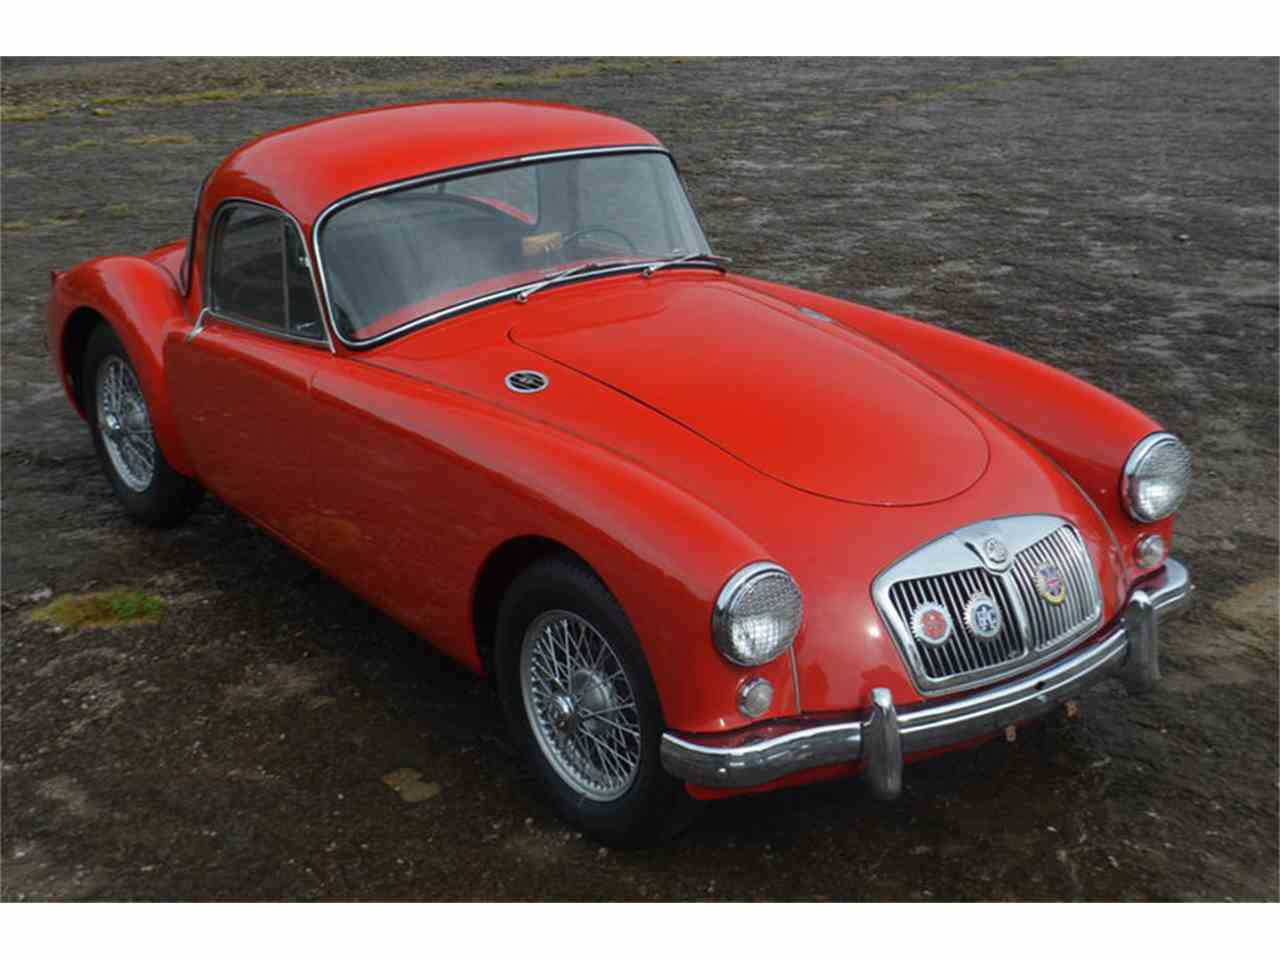 Charming Mga For Sale Craigslist Ideas - Classic Cars Ideas - boiq ...